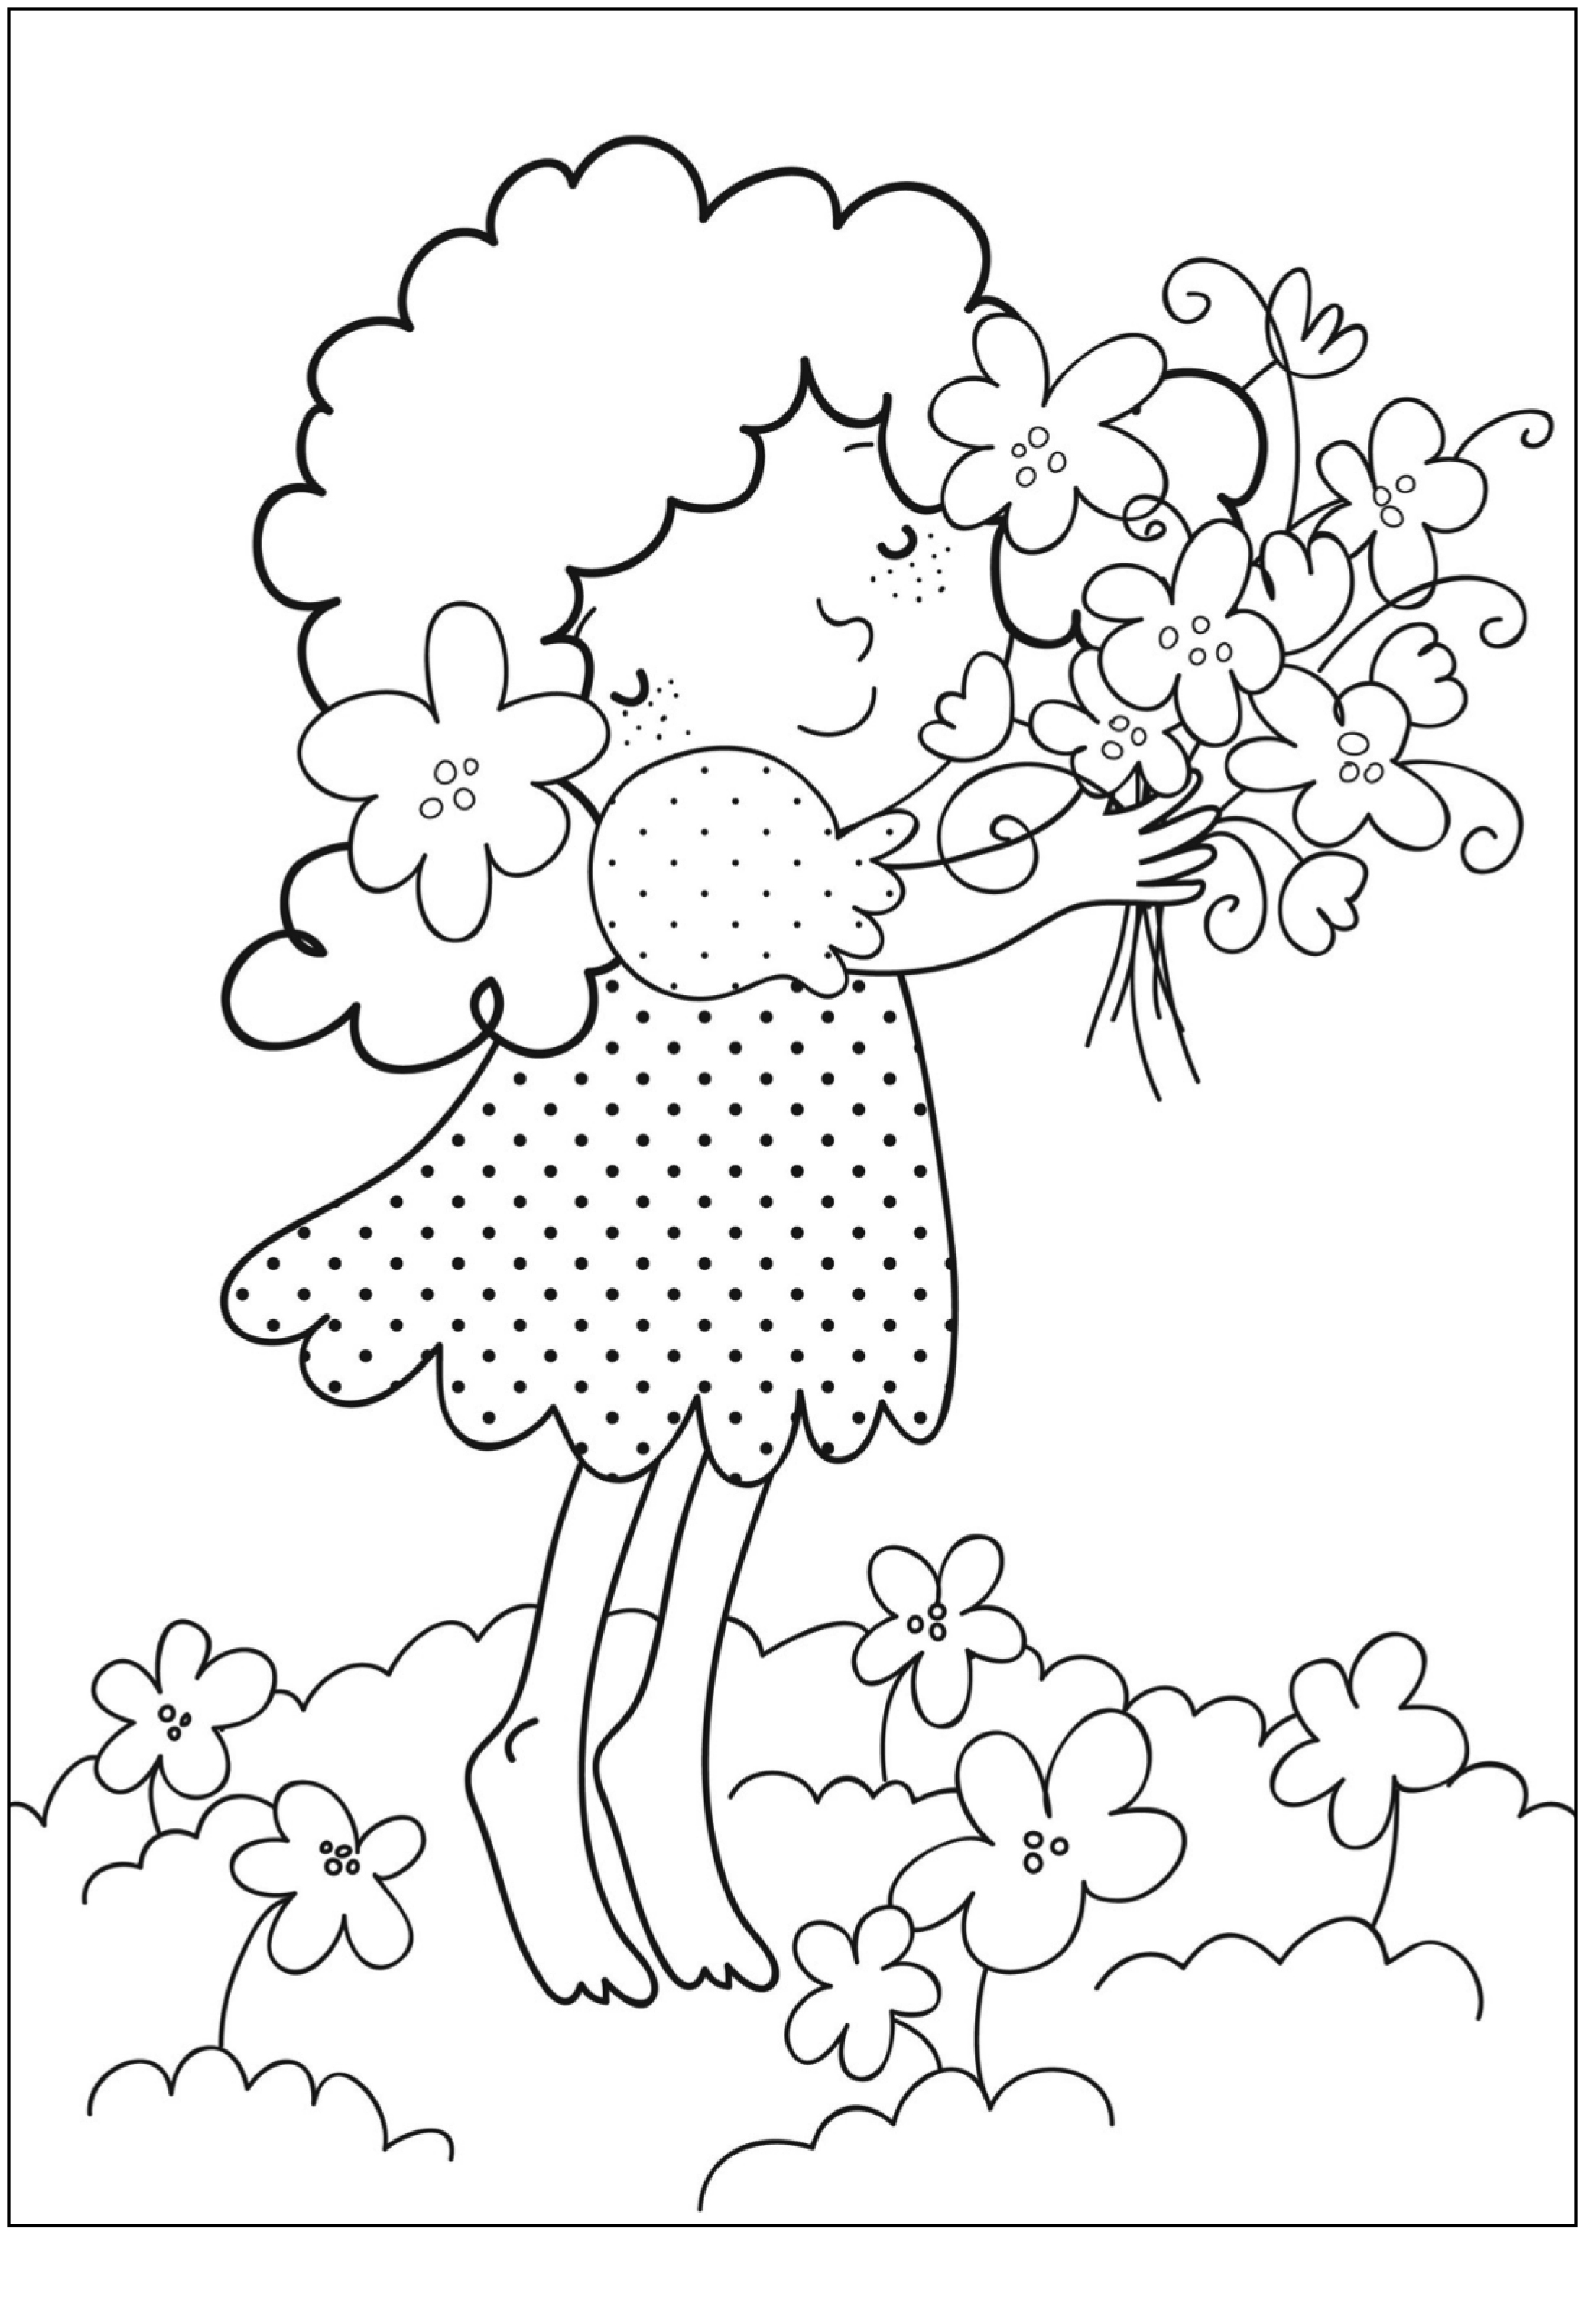 free printable coloring pages of flowers of flowers coloring pages kidsuki flowers pages printable of free coloring